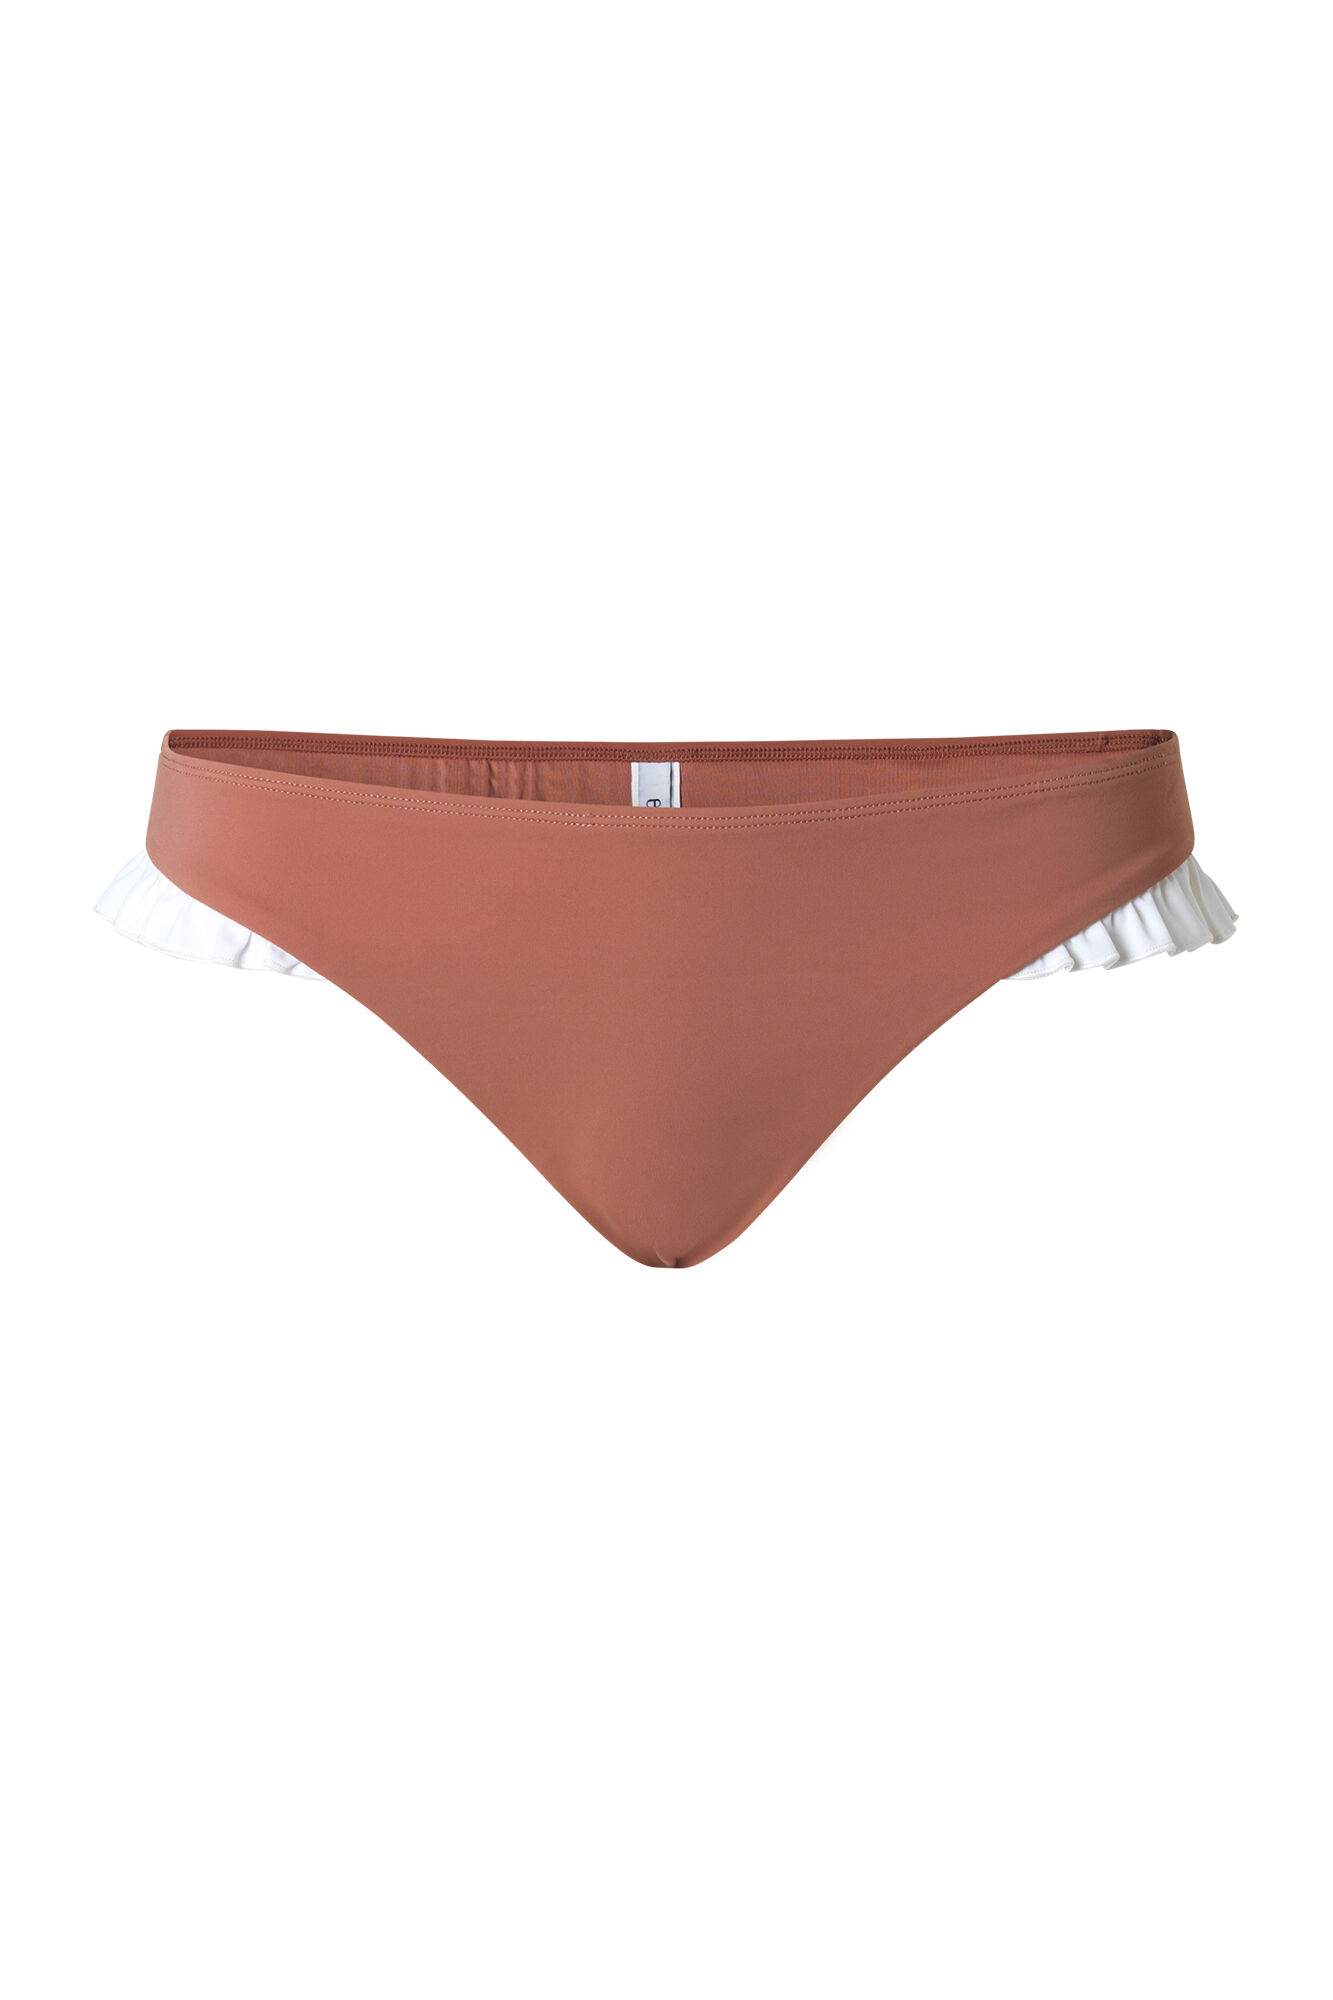 ENJAMAICA SWIM PANTIES 5782, ROSEMARY LIP